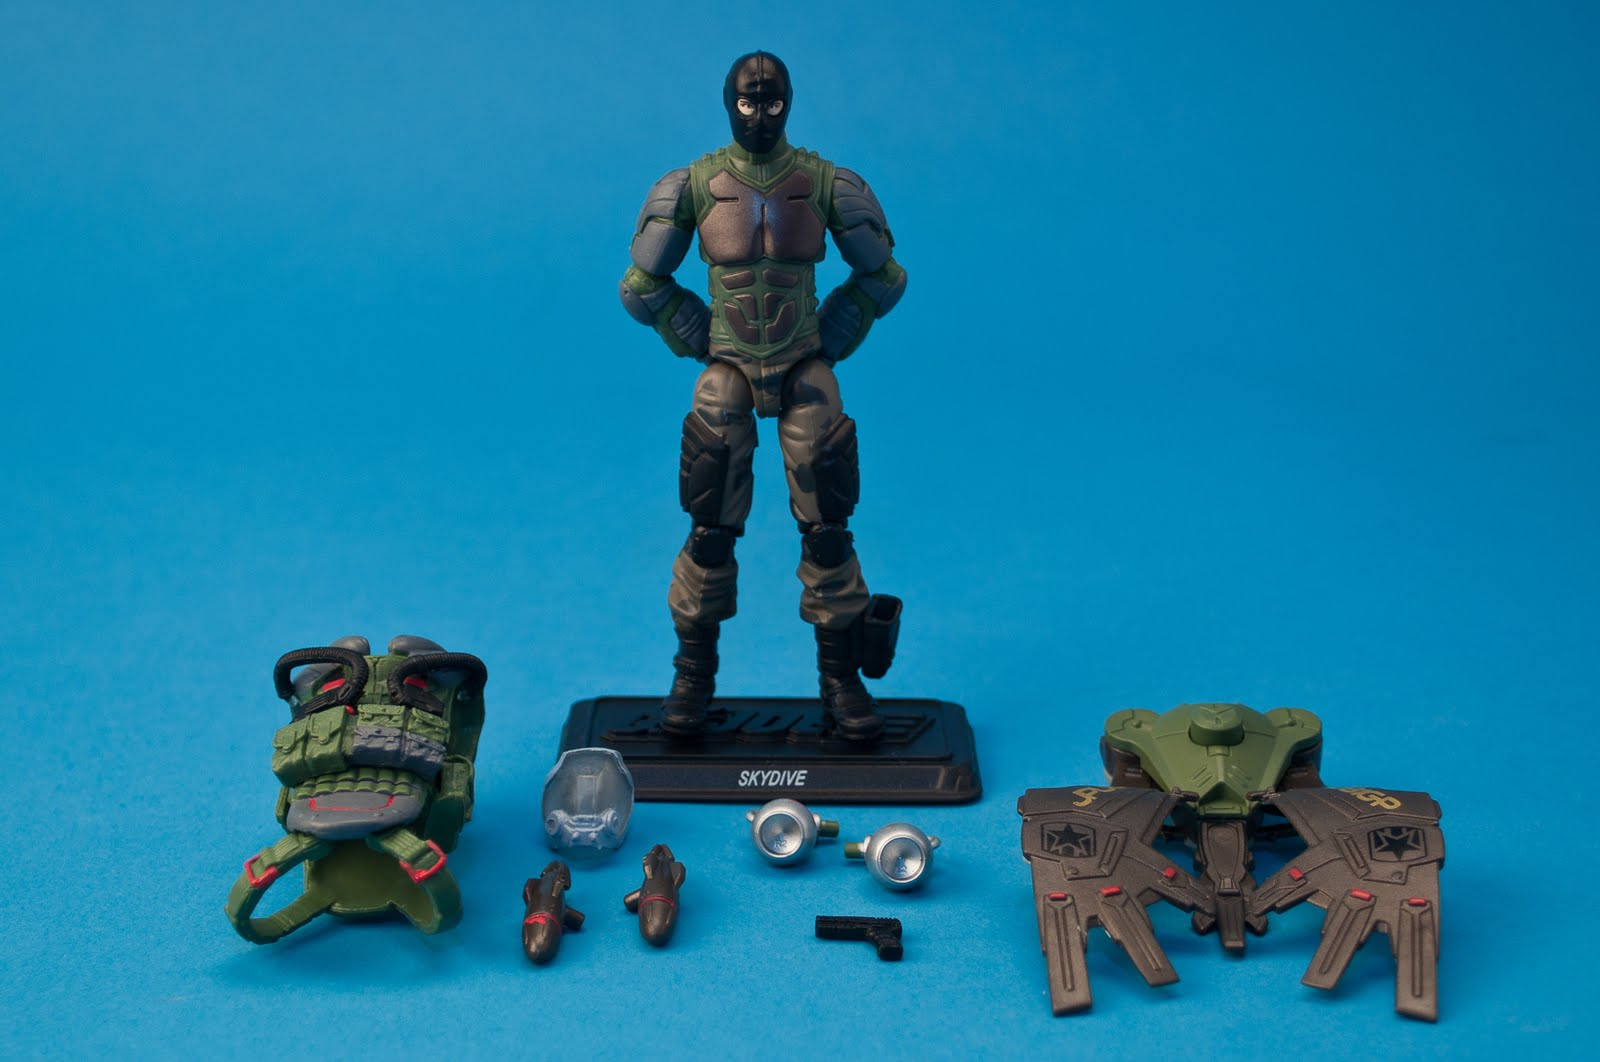 ... helmet, rocket pack with button-activated opening wings, missile (2),  air intake valve (2), pistol, display stand with G.I. Joe logo (SKYDIVE)